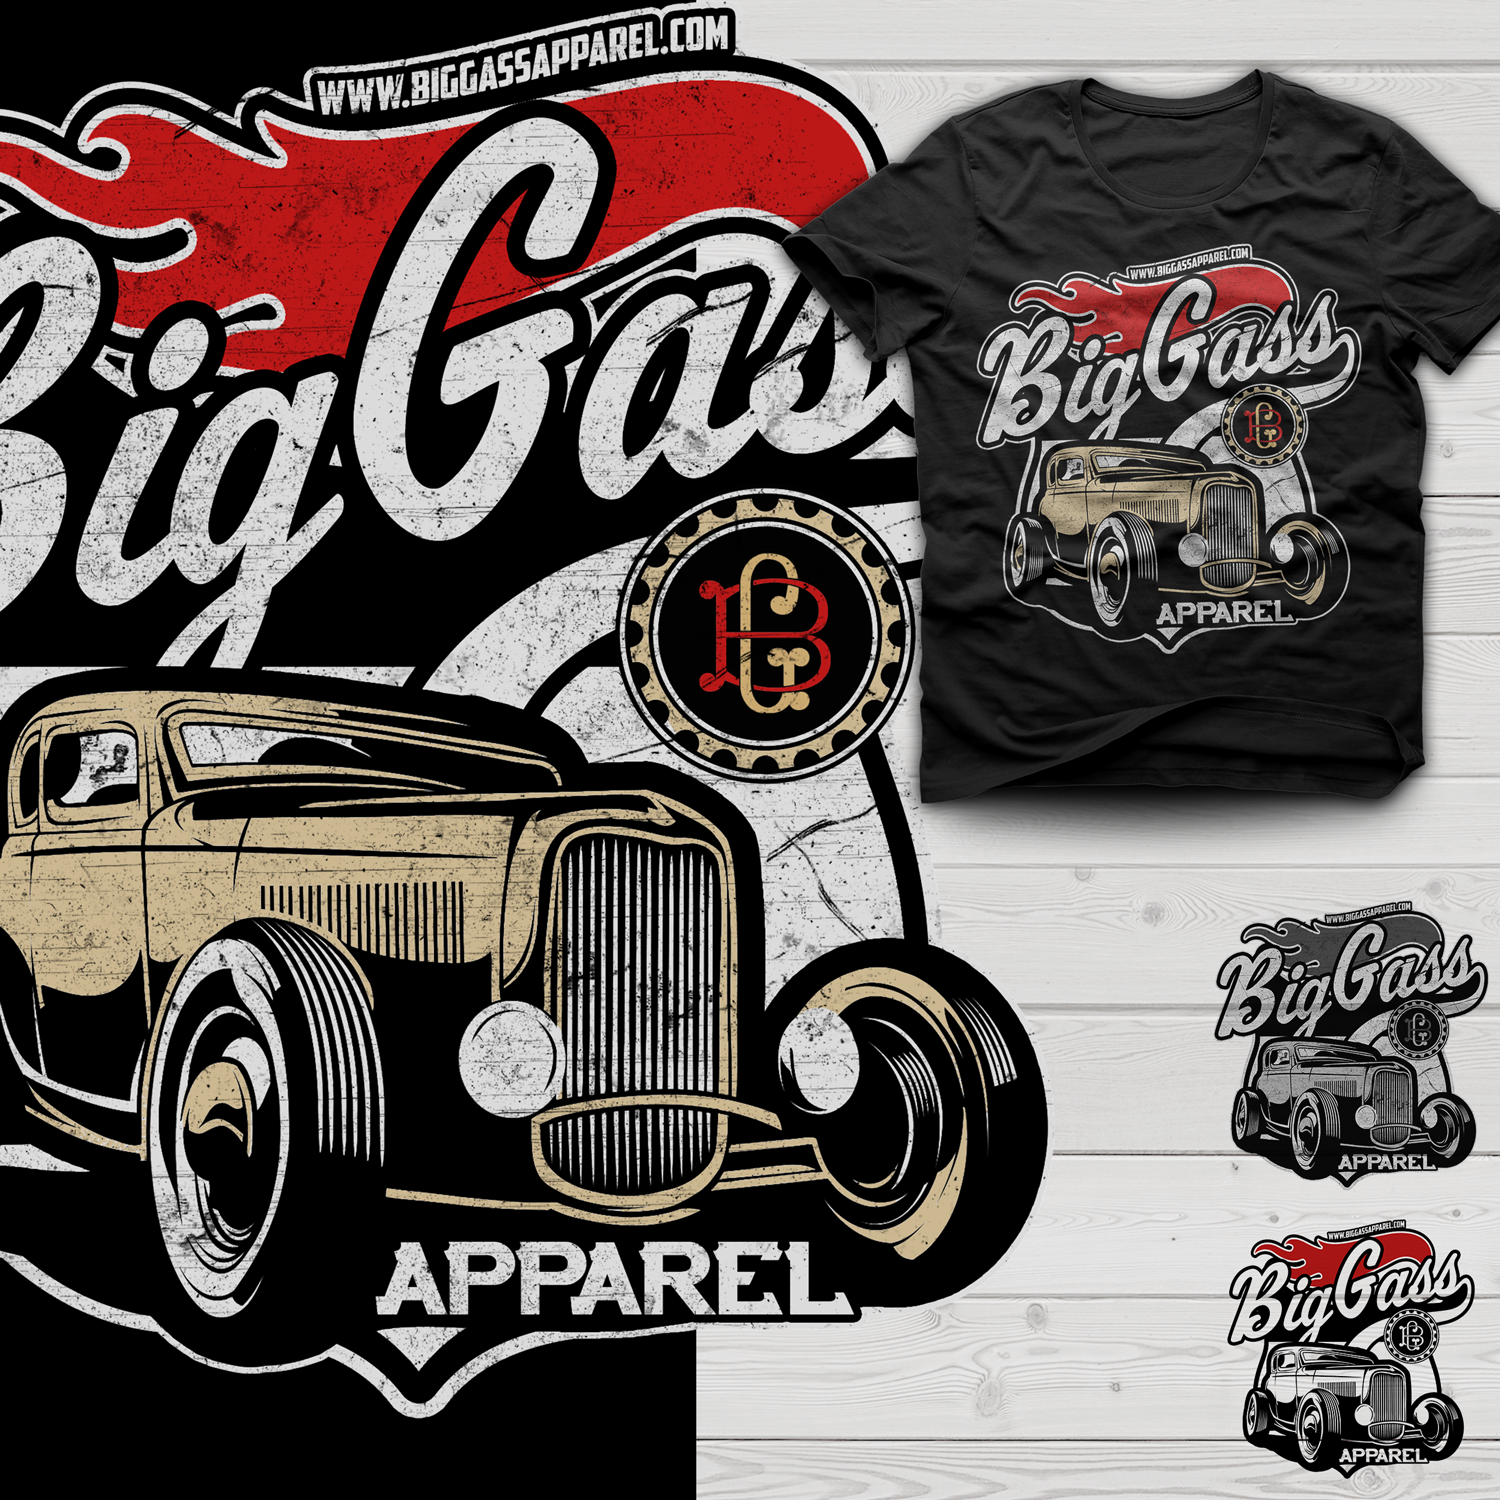 T shirt design job - T Shirt Design Job Big Gass Apparel Hot Rod Lifestyle Clothing Winning Design